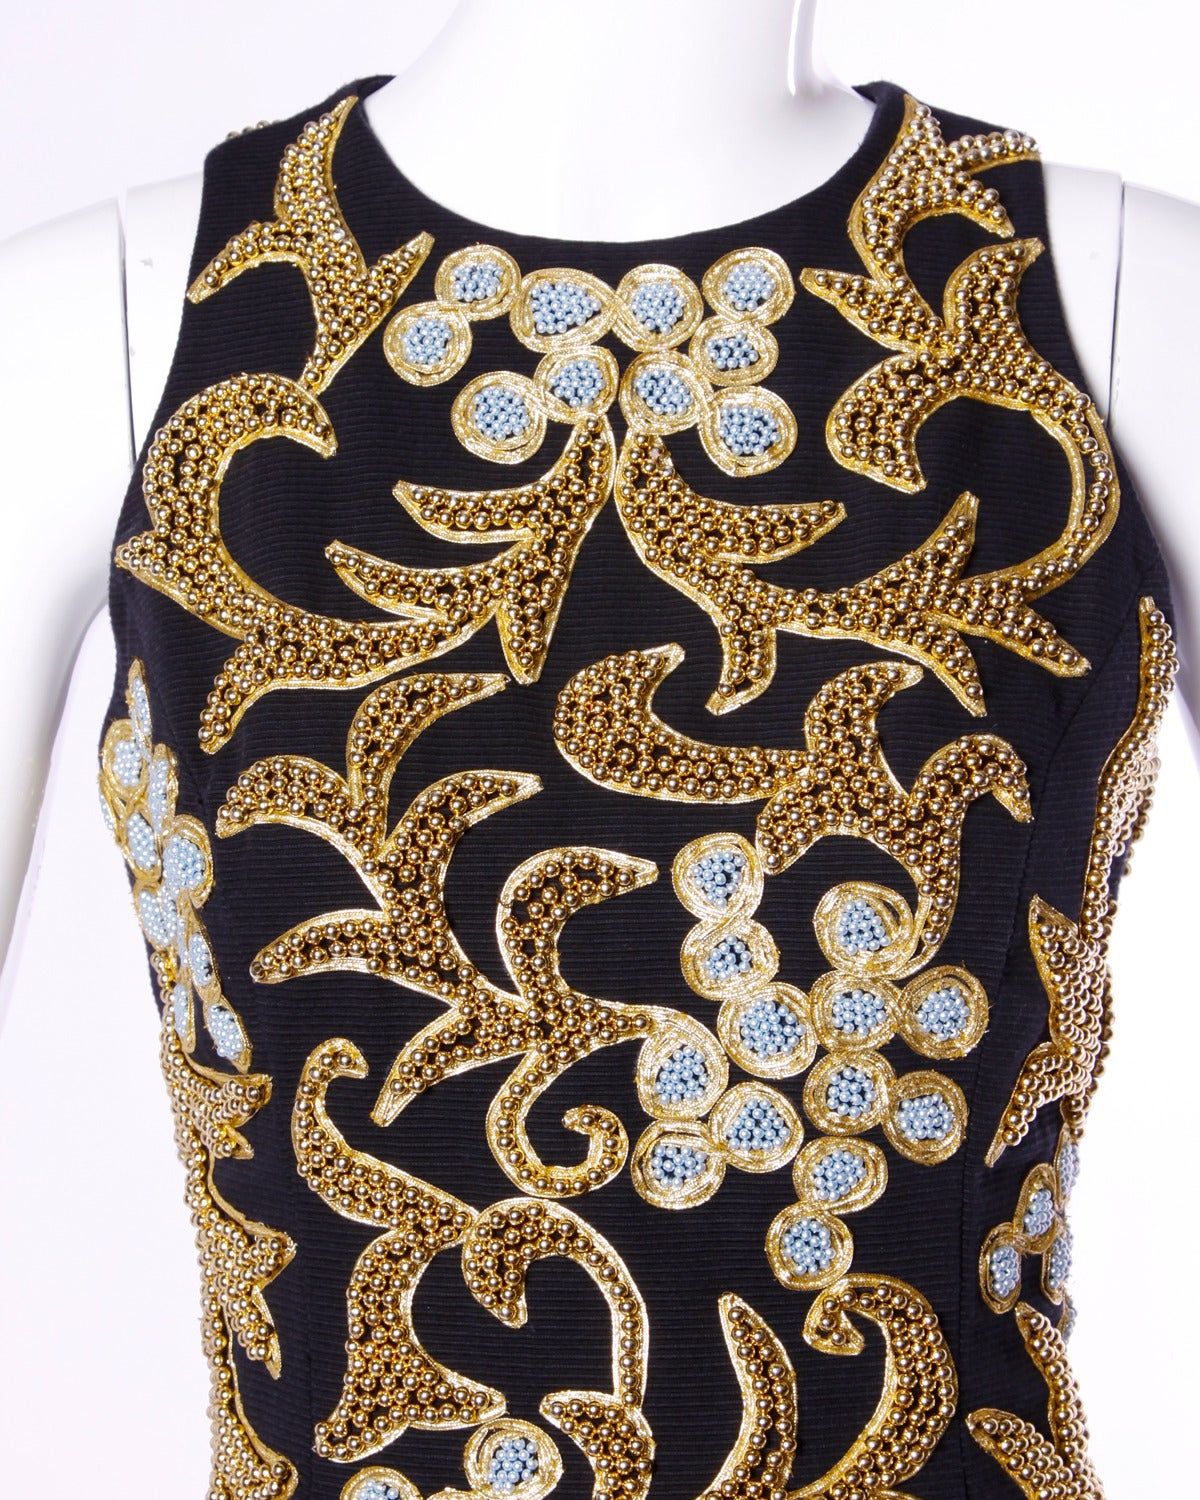 Beautiful black dress by Bill Blass with metallic silver and gold Baroque-inspired beadwork.